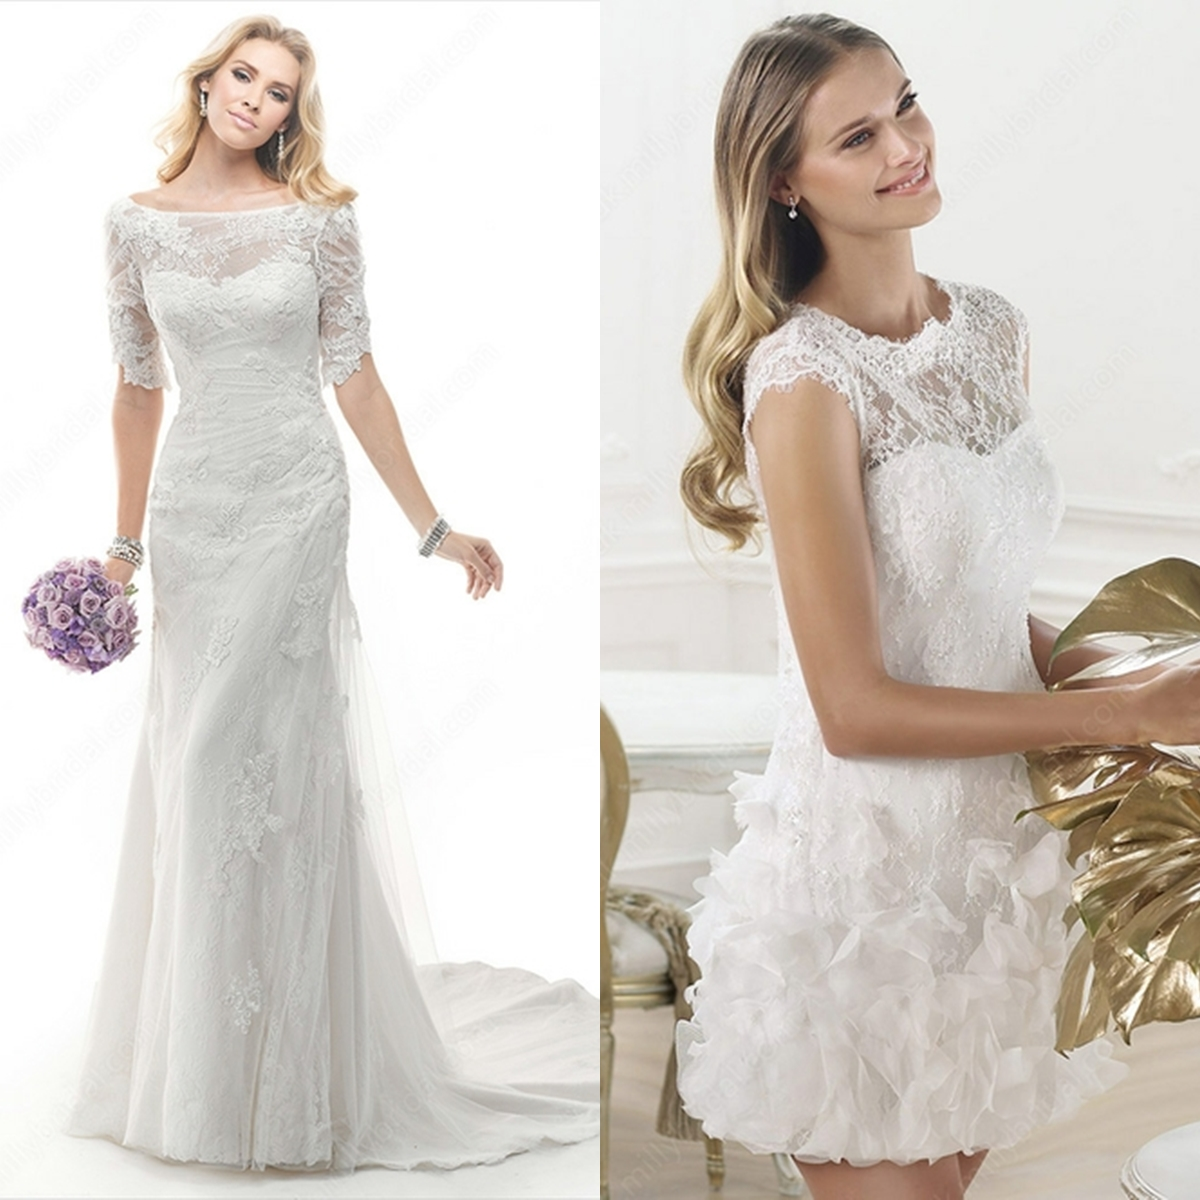 Talking about wedding  I know many couples may desire a pre wed shoots for  themselves  Well  talking about what to wear for the bride  it can be any  gown or  A Stack of Macaroons  7 LACE WEDDING DRESSES FROM MILLY BRIDAL  . Milly Wedding Dresses. Home Design Ideas